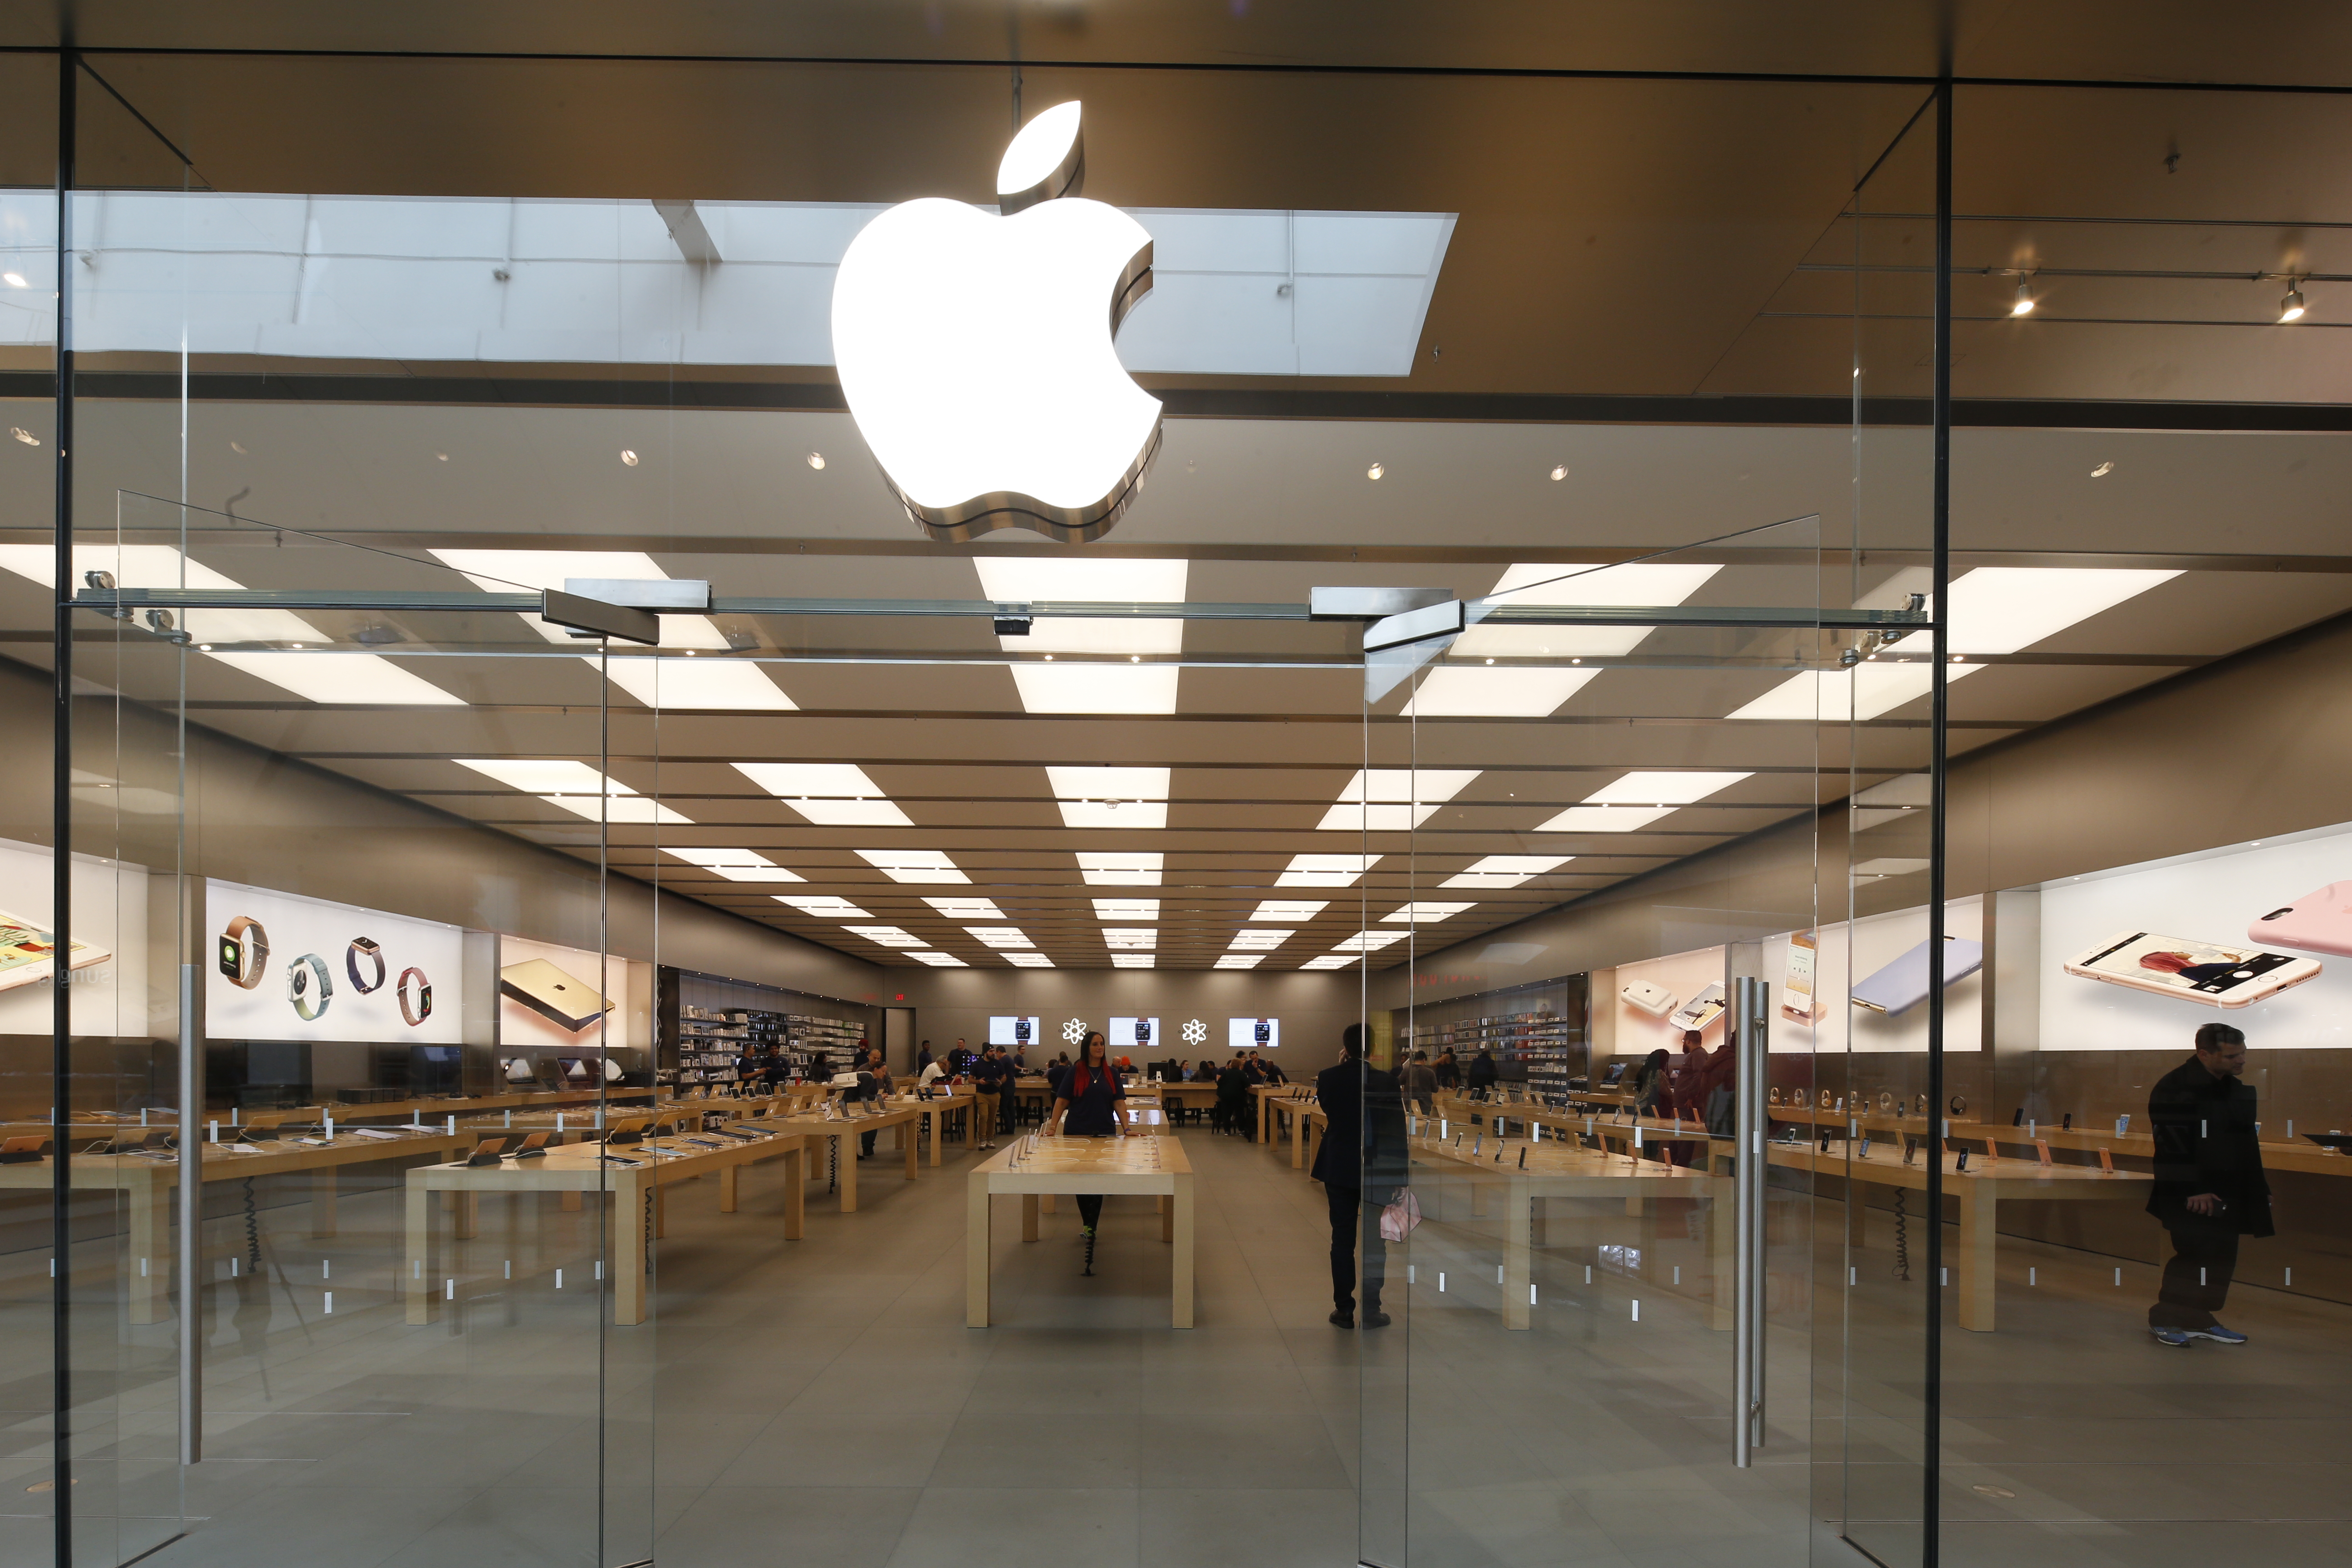 The Apple store at Garden State Plaza in Paramus, N.J.